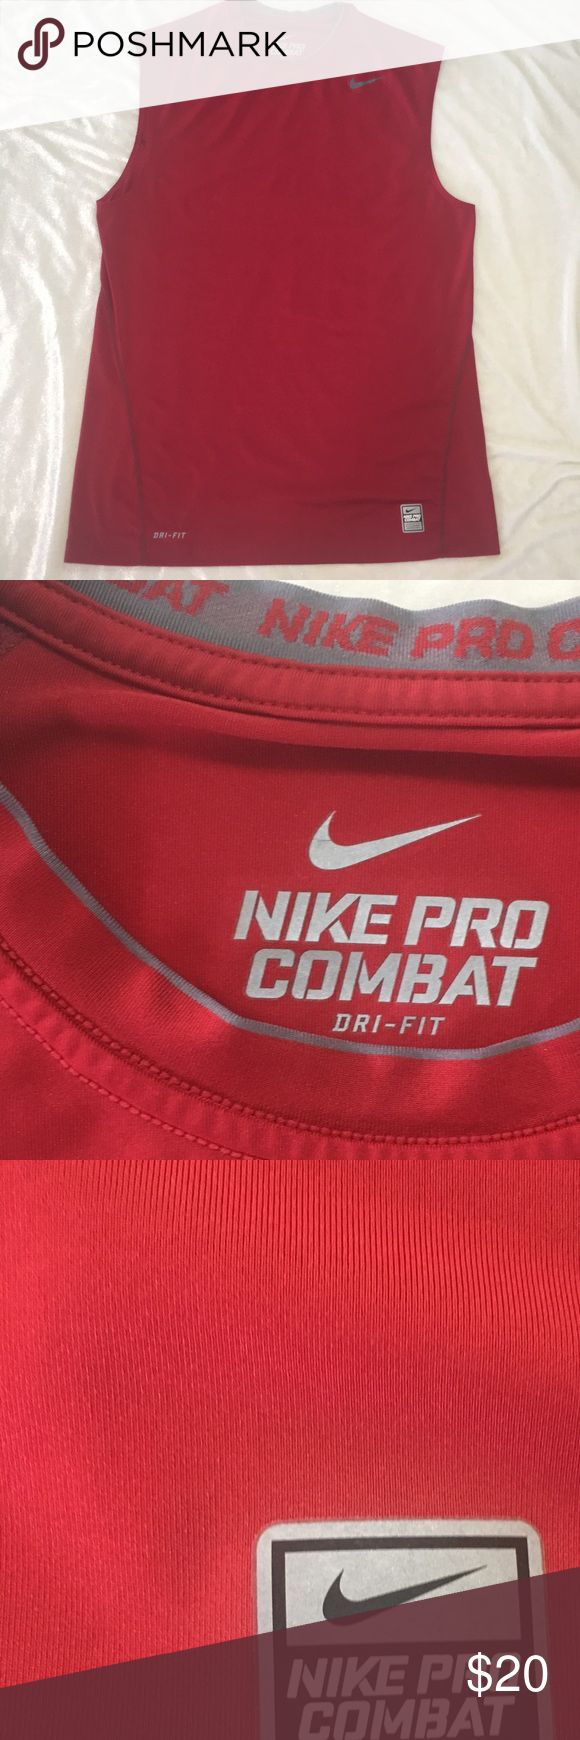 NIKE PRO COMBAT SLEEVELESS SHIRT MEN Fitted LG Red NIKE PRO COMBAT SLEEVELESS ATHLETIC SHIRT MENS Fitted SIZE LARGE Red Nike Shirts Tank Tops